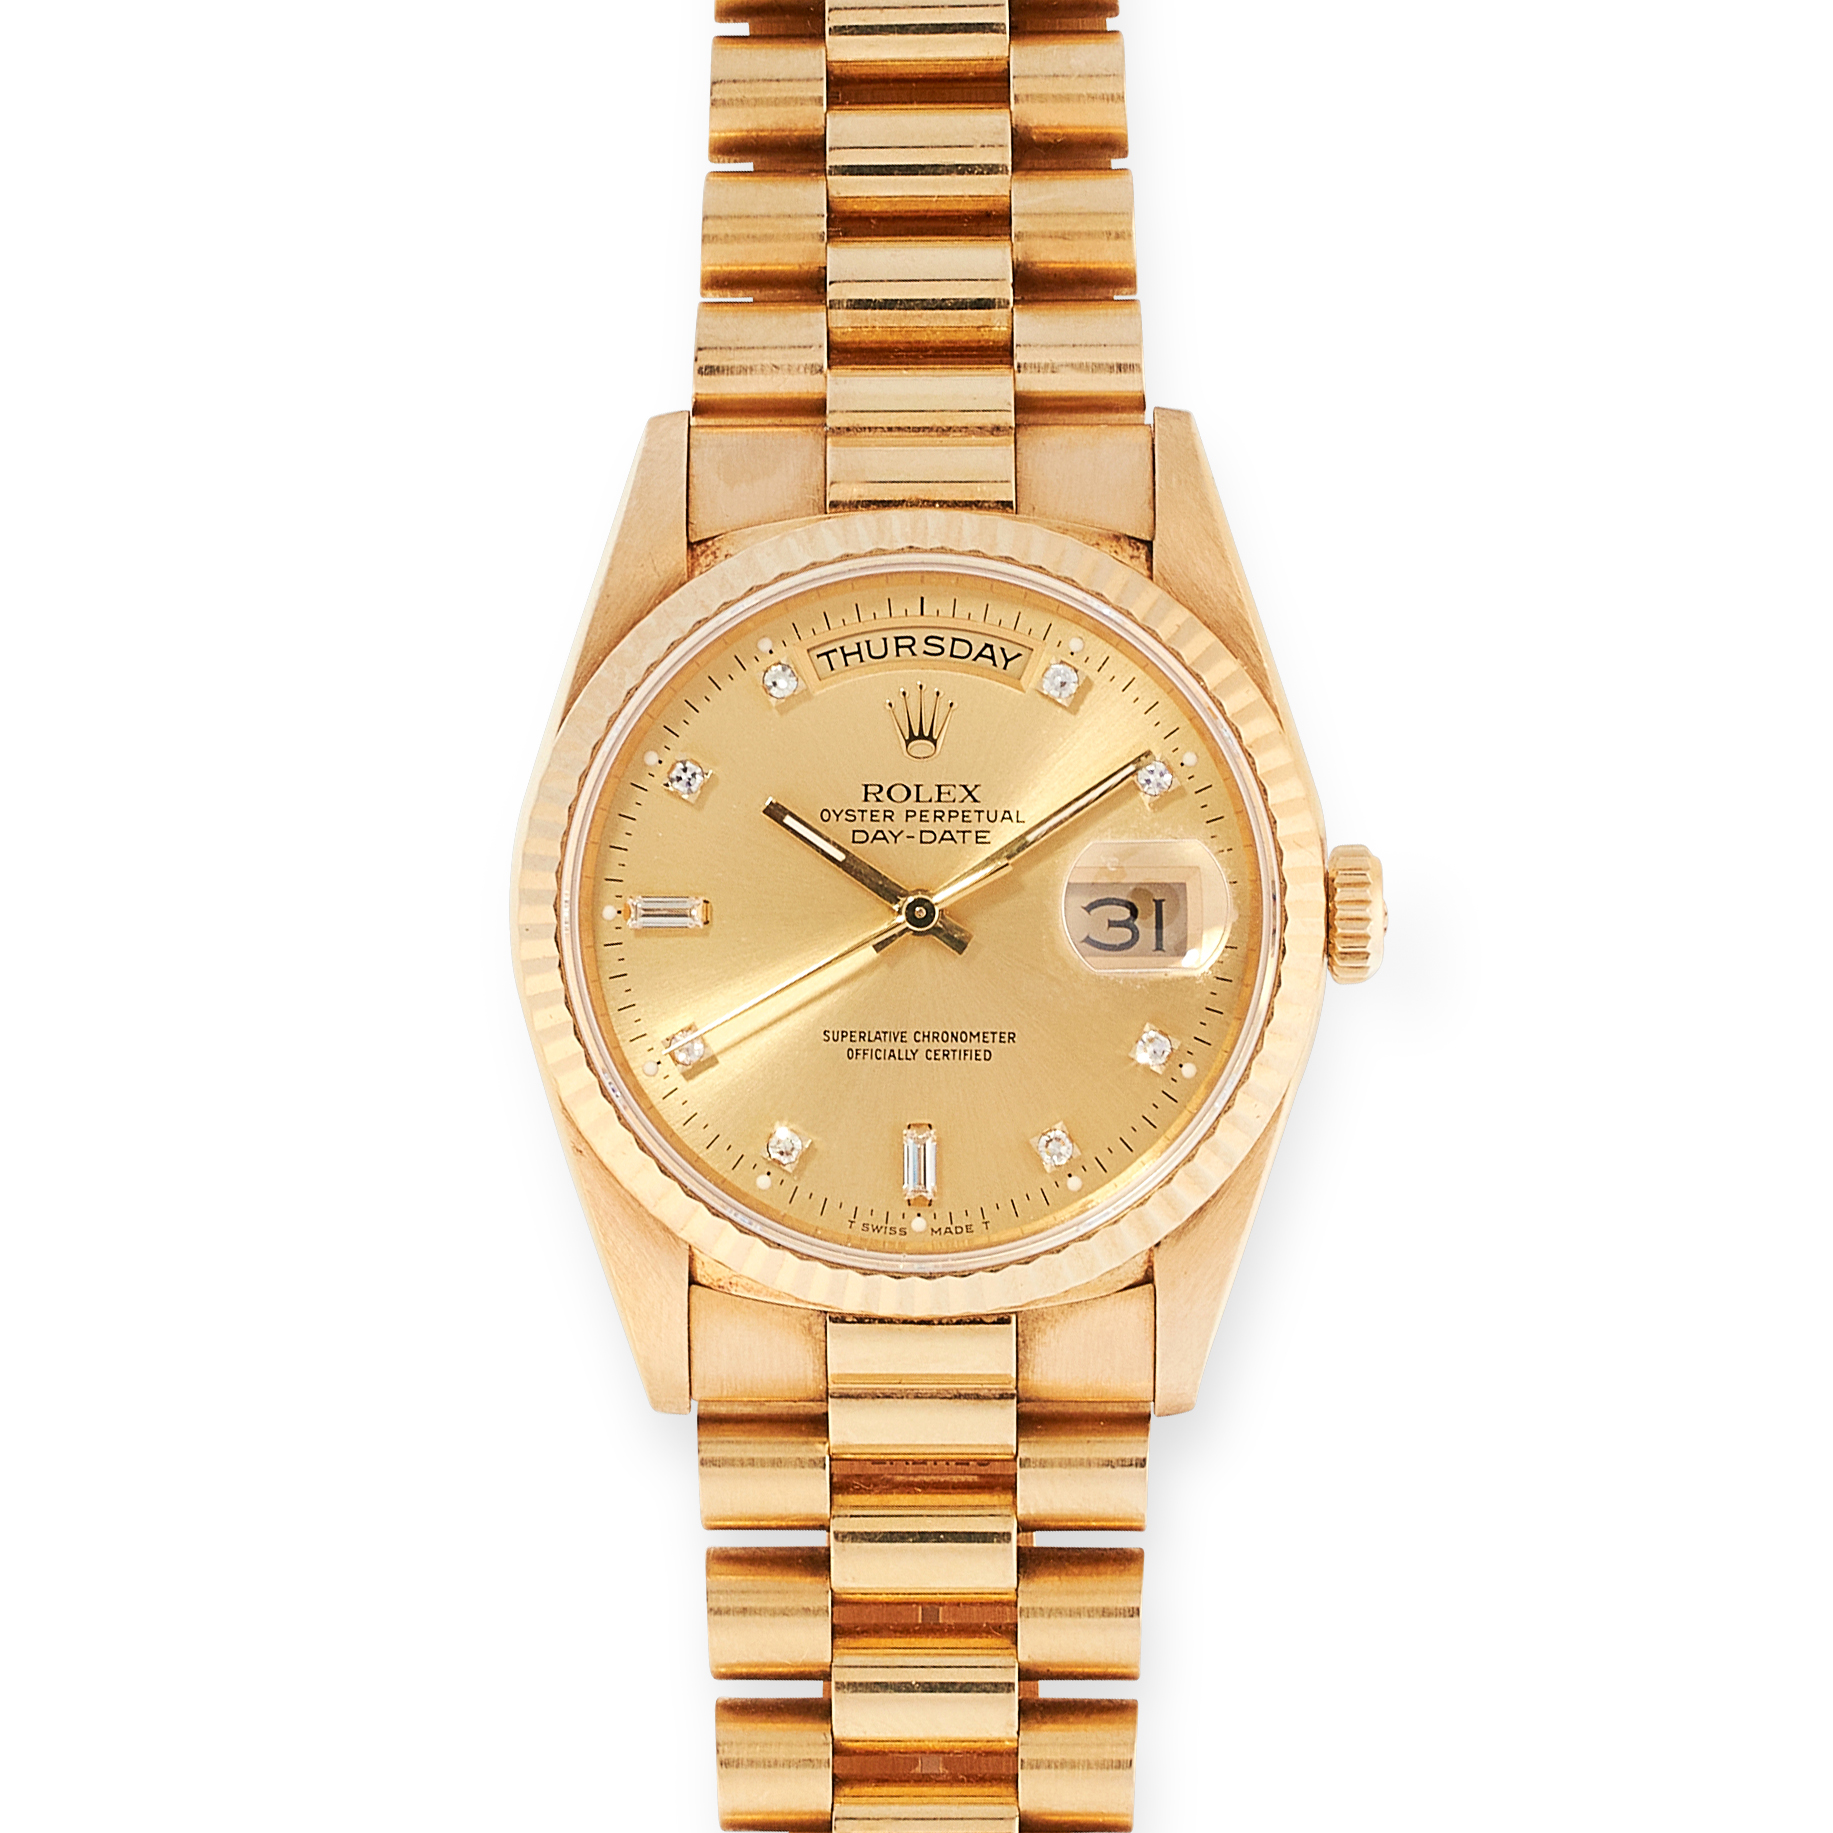 A GENT'S OYSTER PERPETUAL DAY-DATE WRIST WATCH, ROLEX in 18ct yellow gold, the gold coloured dial